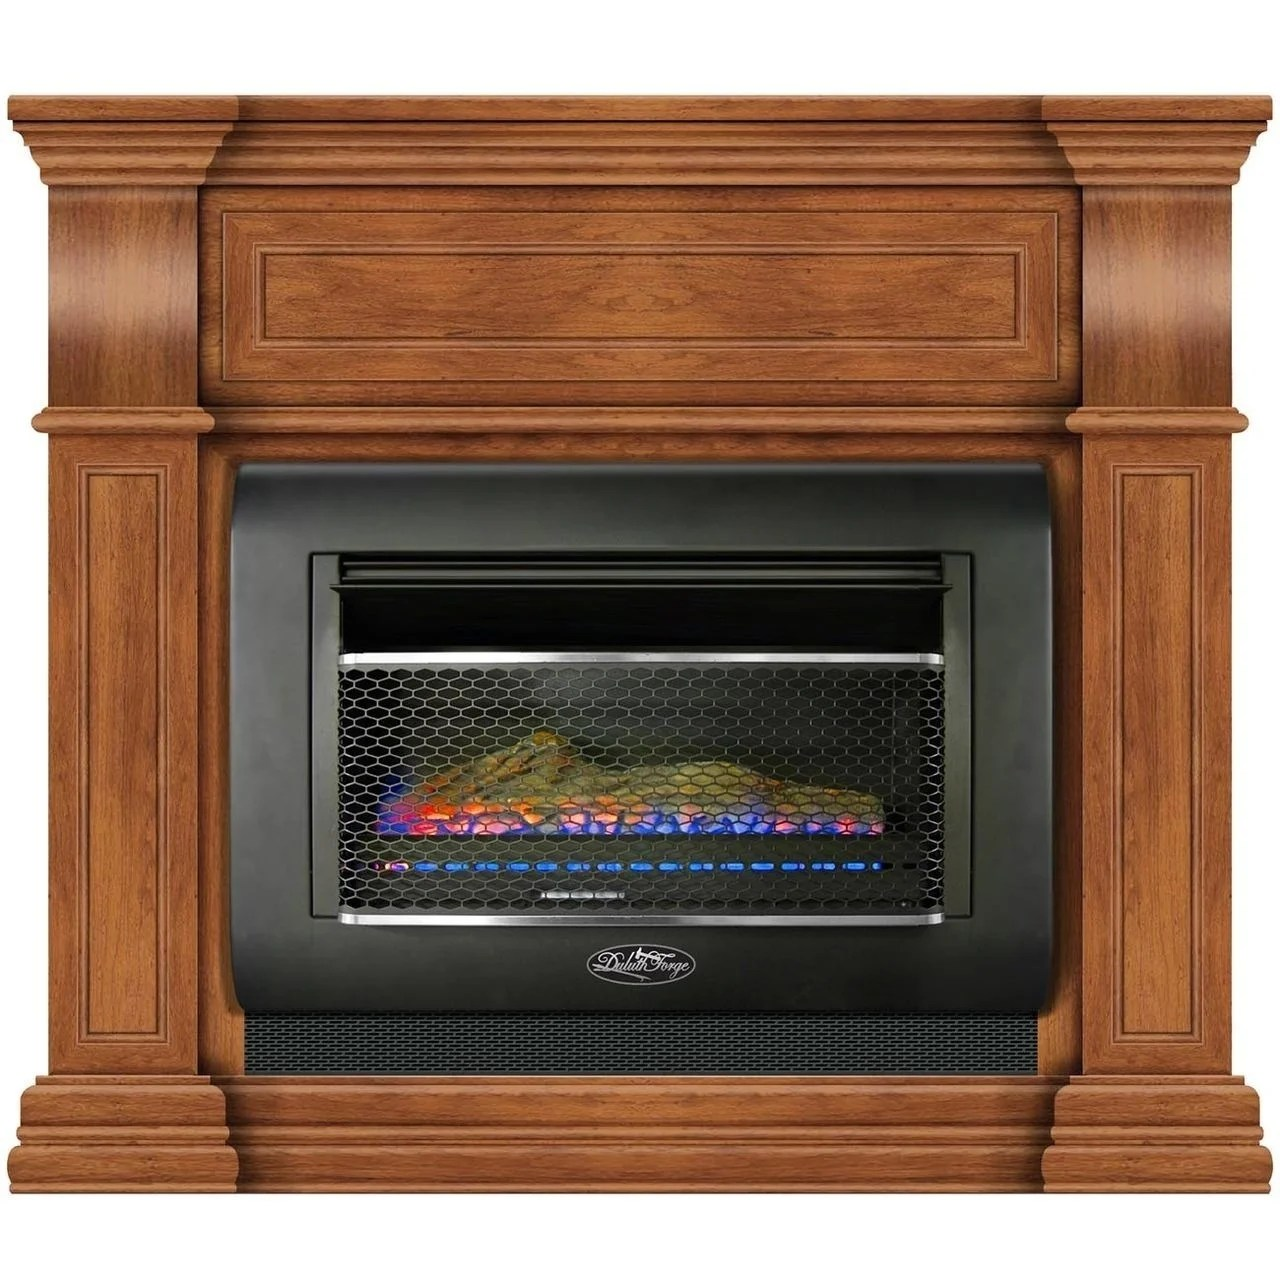 Wall Fireplace Gas Duluth Forge Mini Hearth Ventless Gas Wall Fireplace 26 000 Btu T Stat Control Toasted Almond Finish Model Df300l M Ta